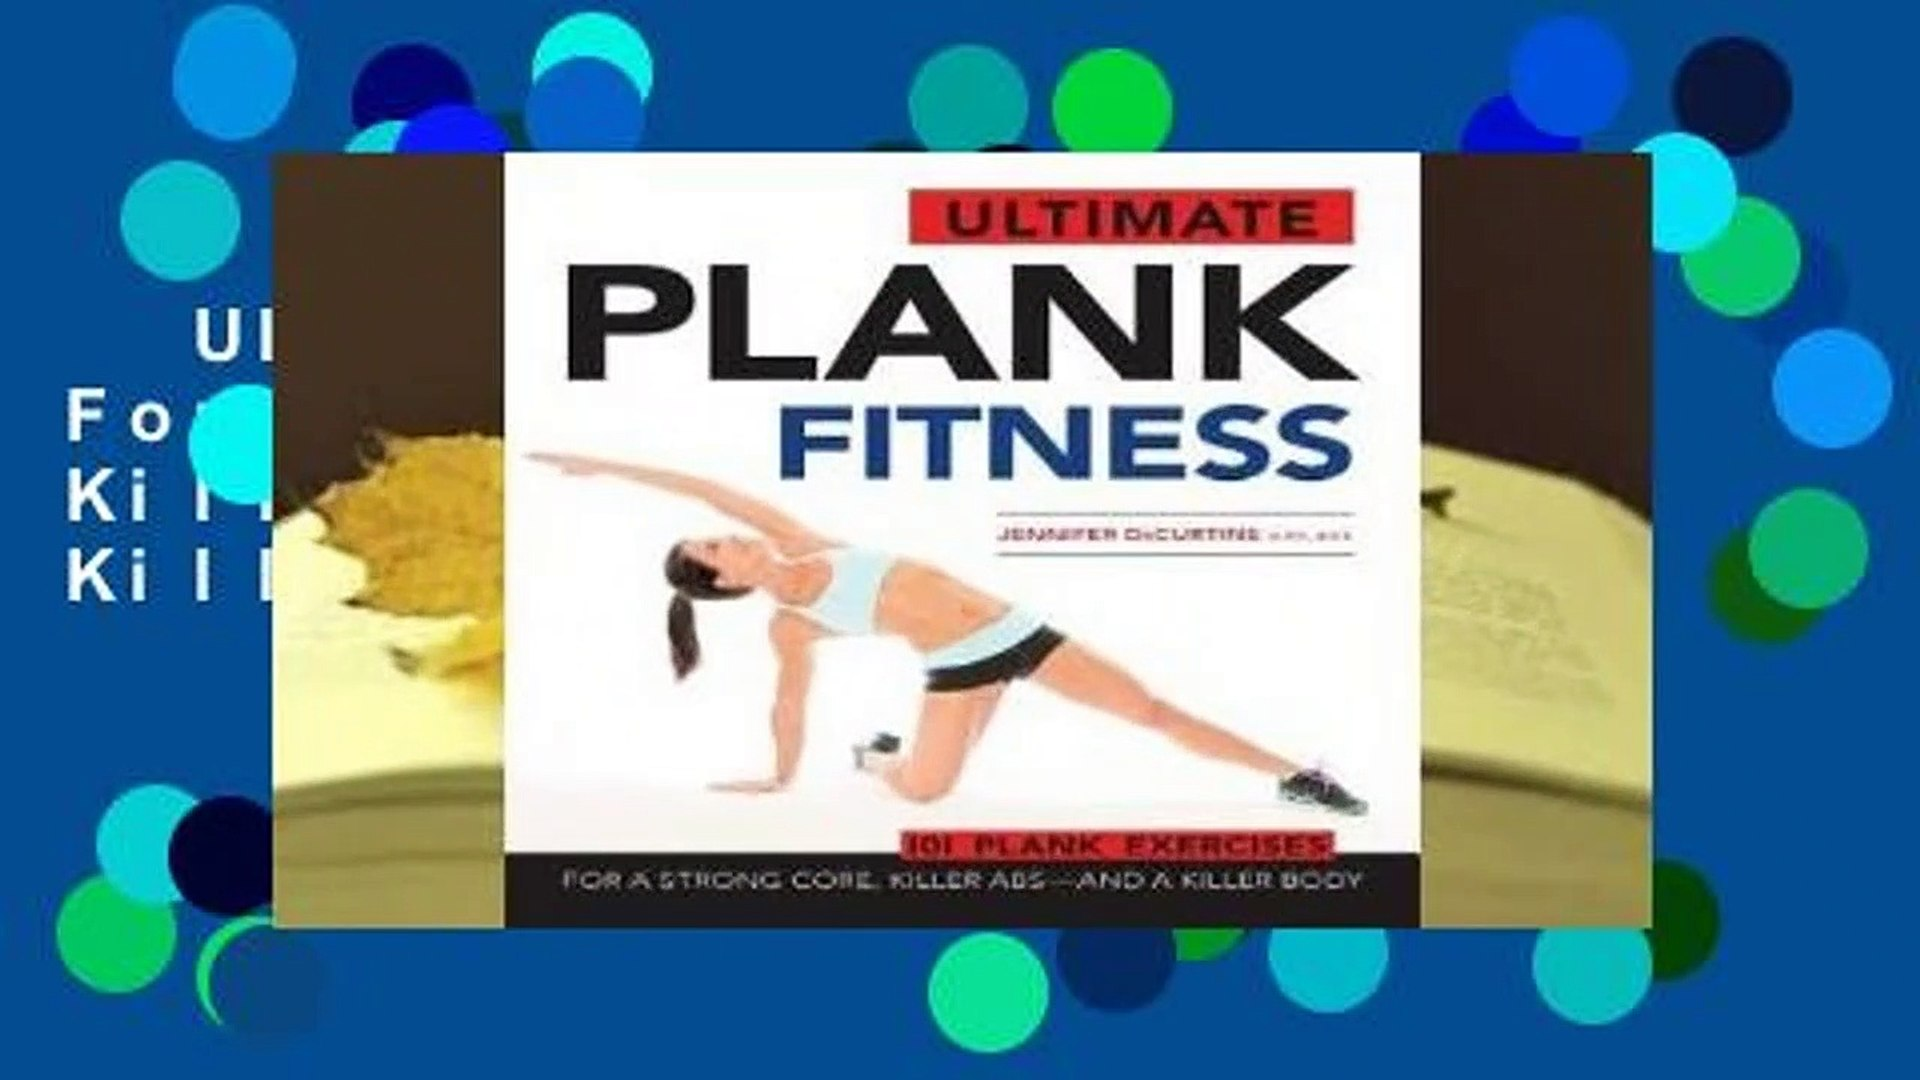 Ultimate Plank Fitness: For a Strong Core, Killer Abs - and a Killer Body  Review